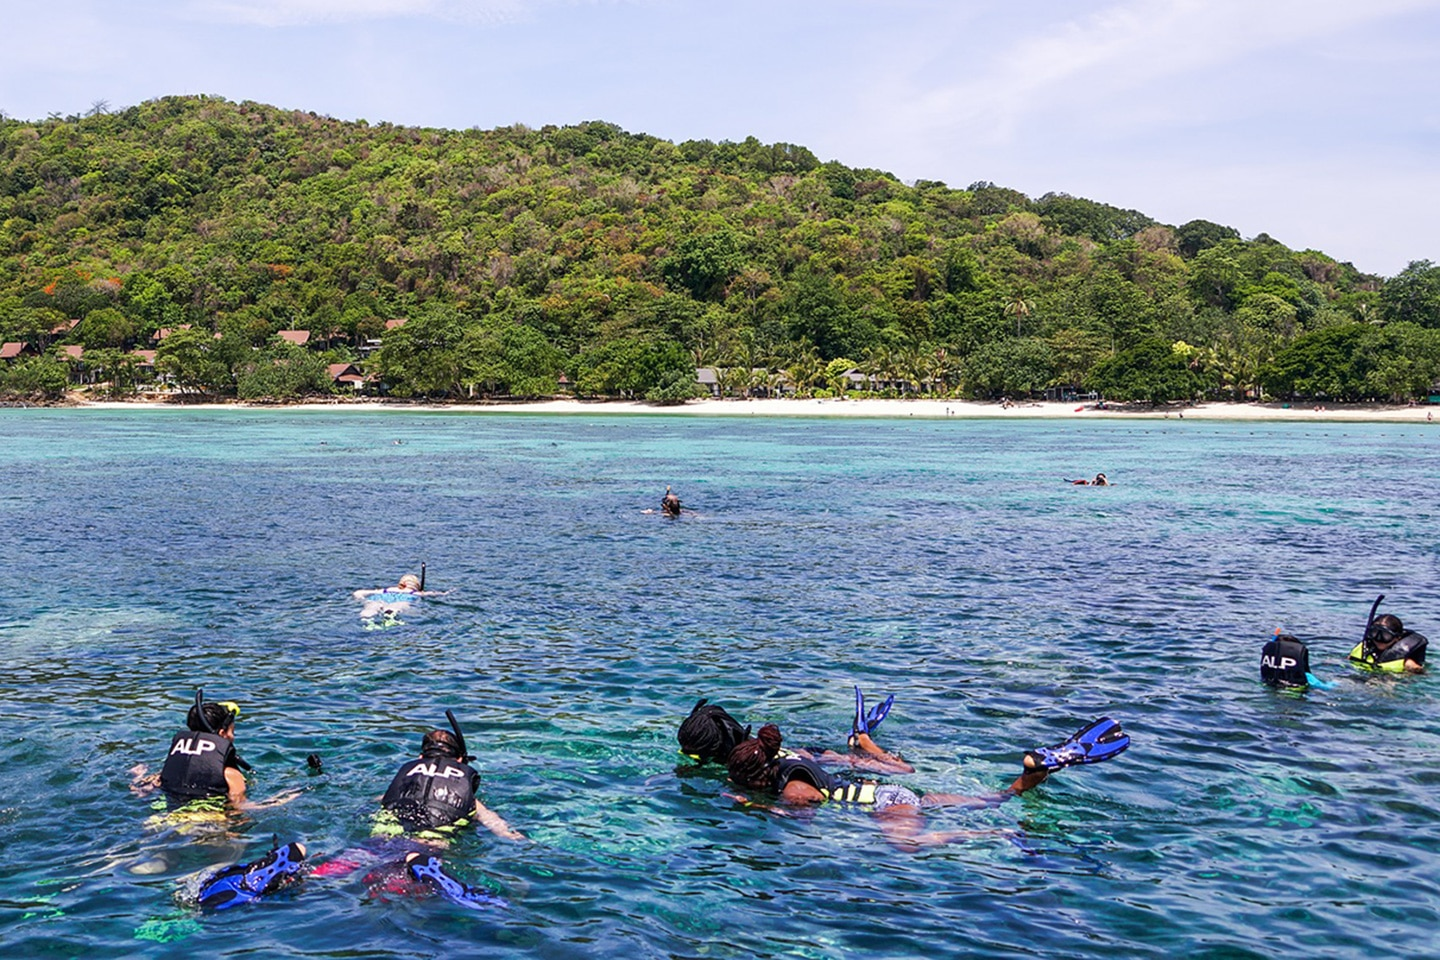 Group of snorkelers in the water